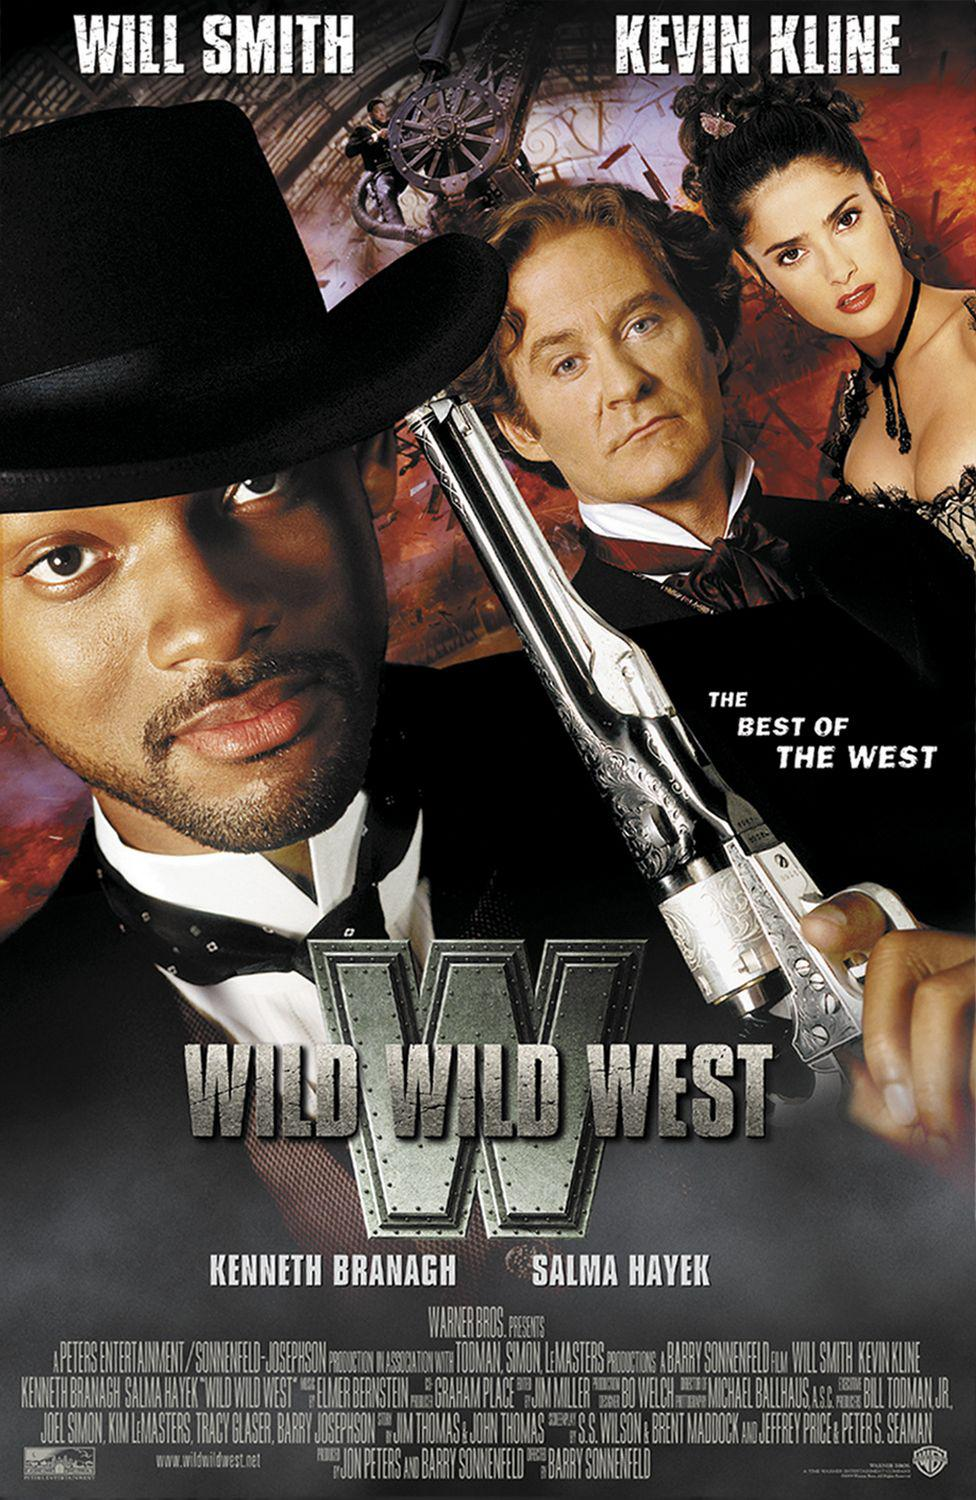 Wild Wild West - Will Smith - Kevin Kline - Kenneth Branagh - Salma Hayek - film poster - Steampunk